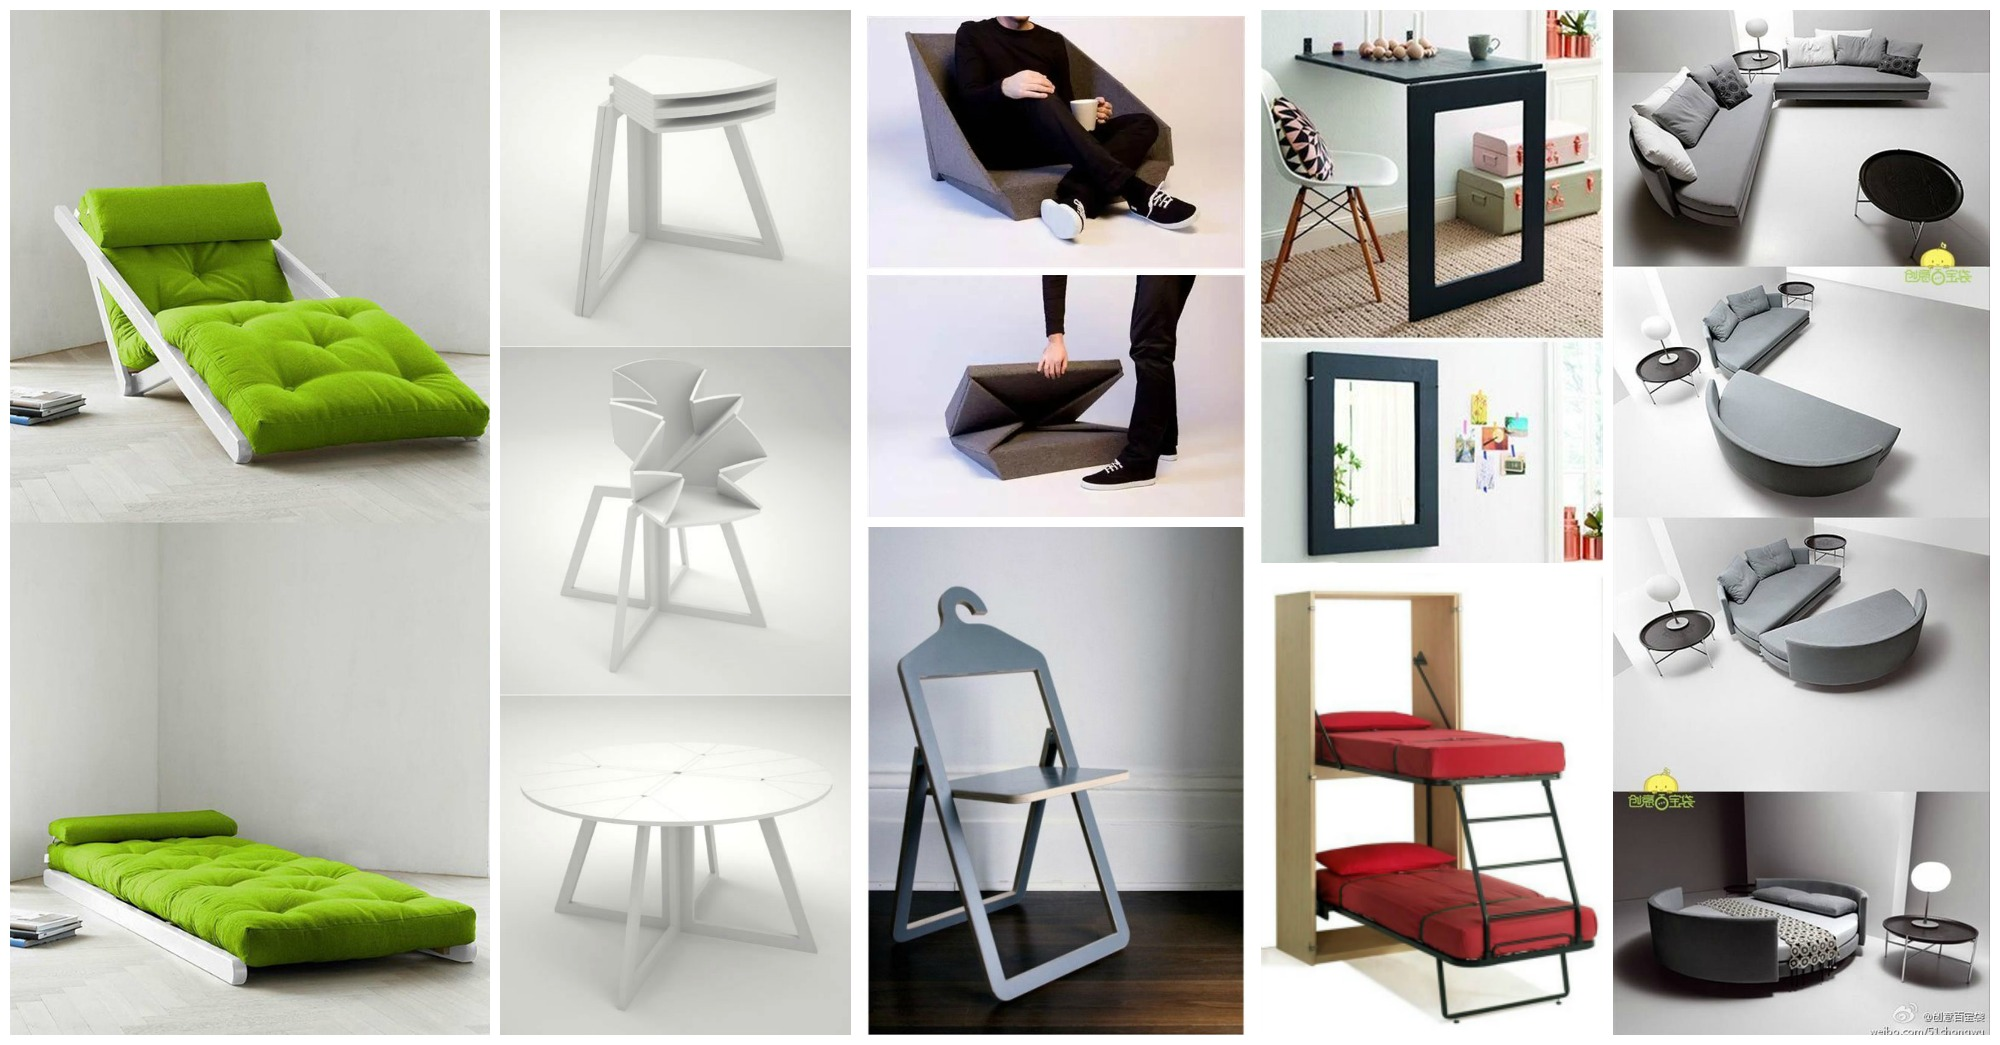 15 Superb Folding Furniture Ideas To Save Space